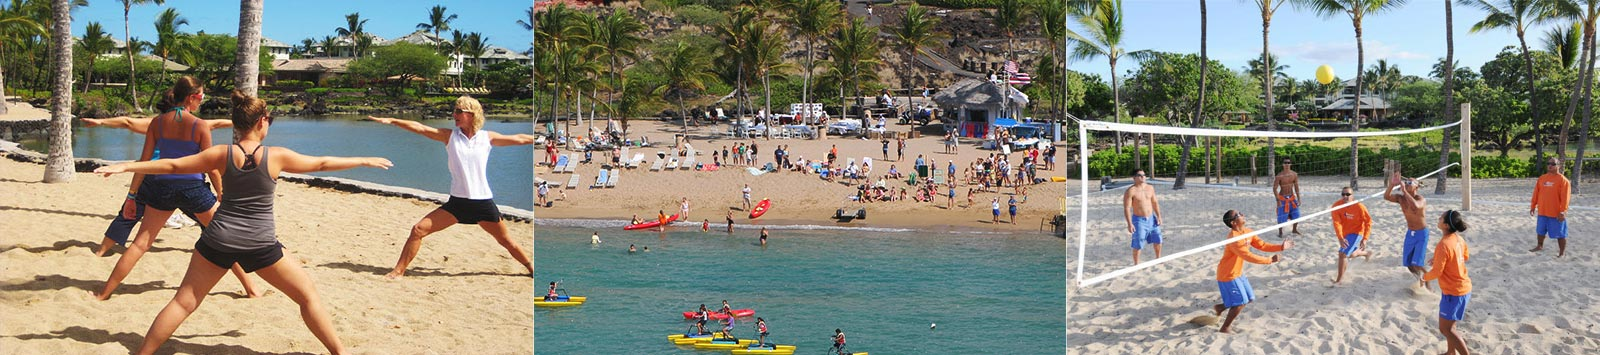 Beach Activities - Hawaii Ocean Sports